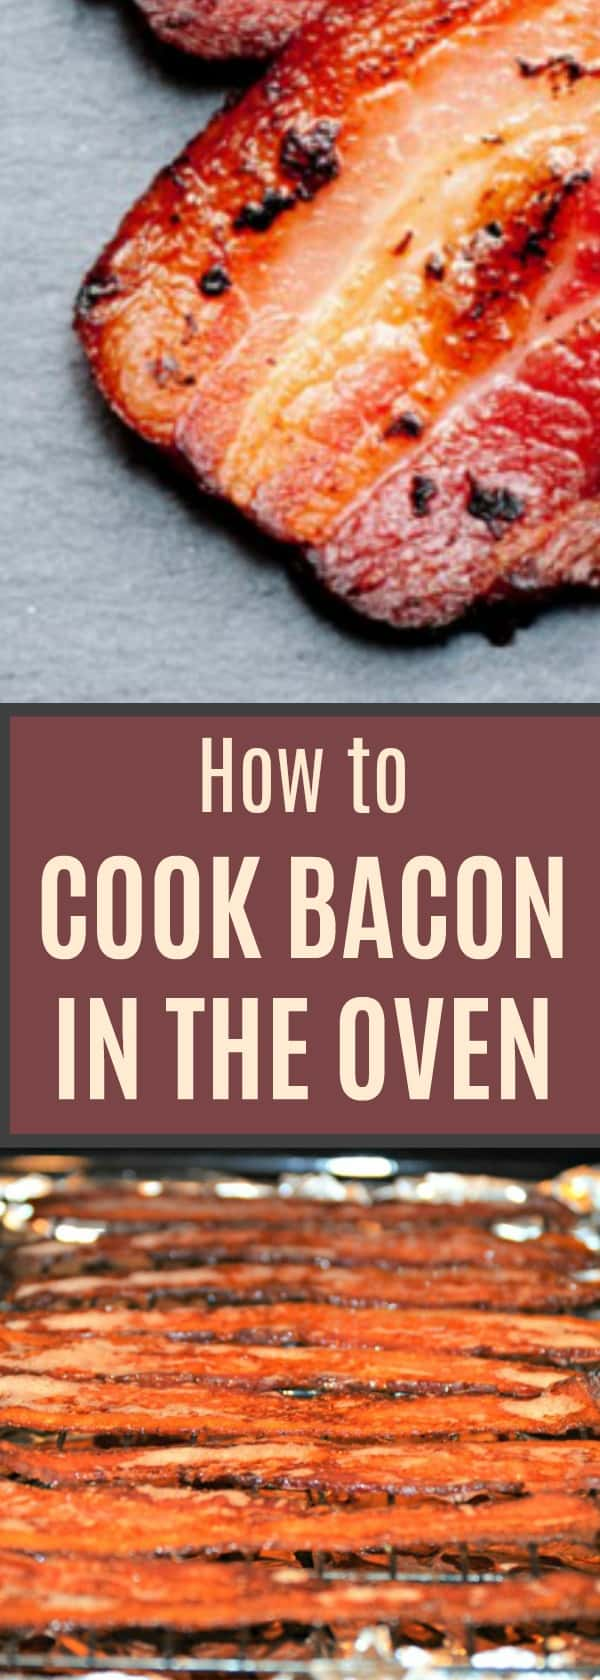 How To Cook Bacon In The Oven Housewife How To S 174